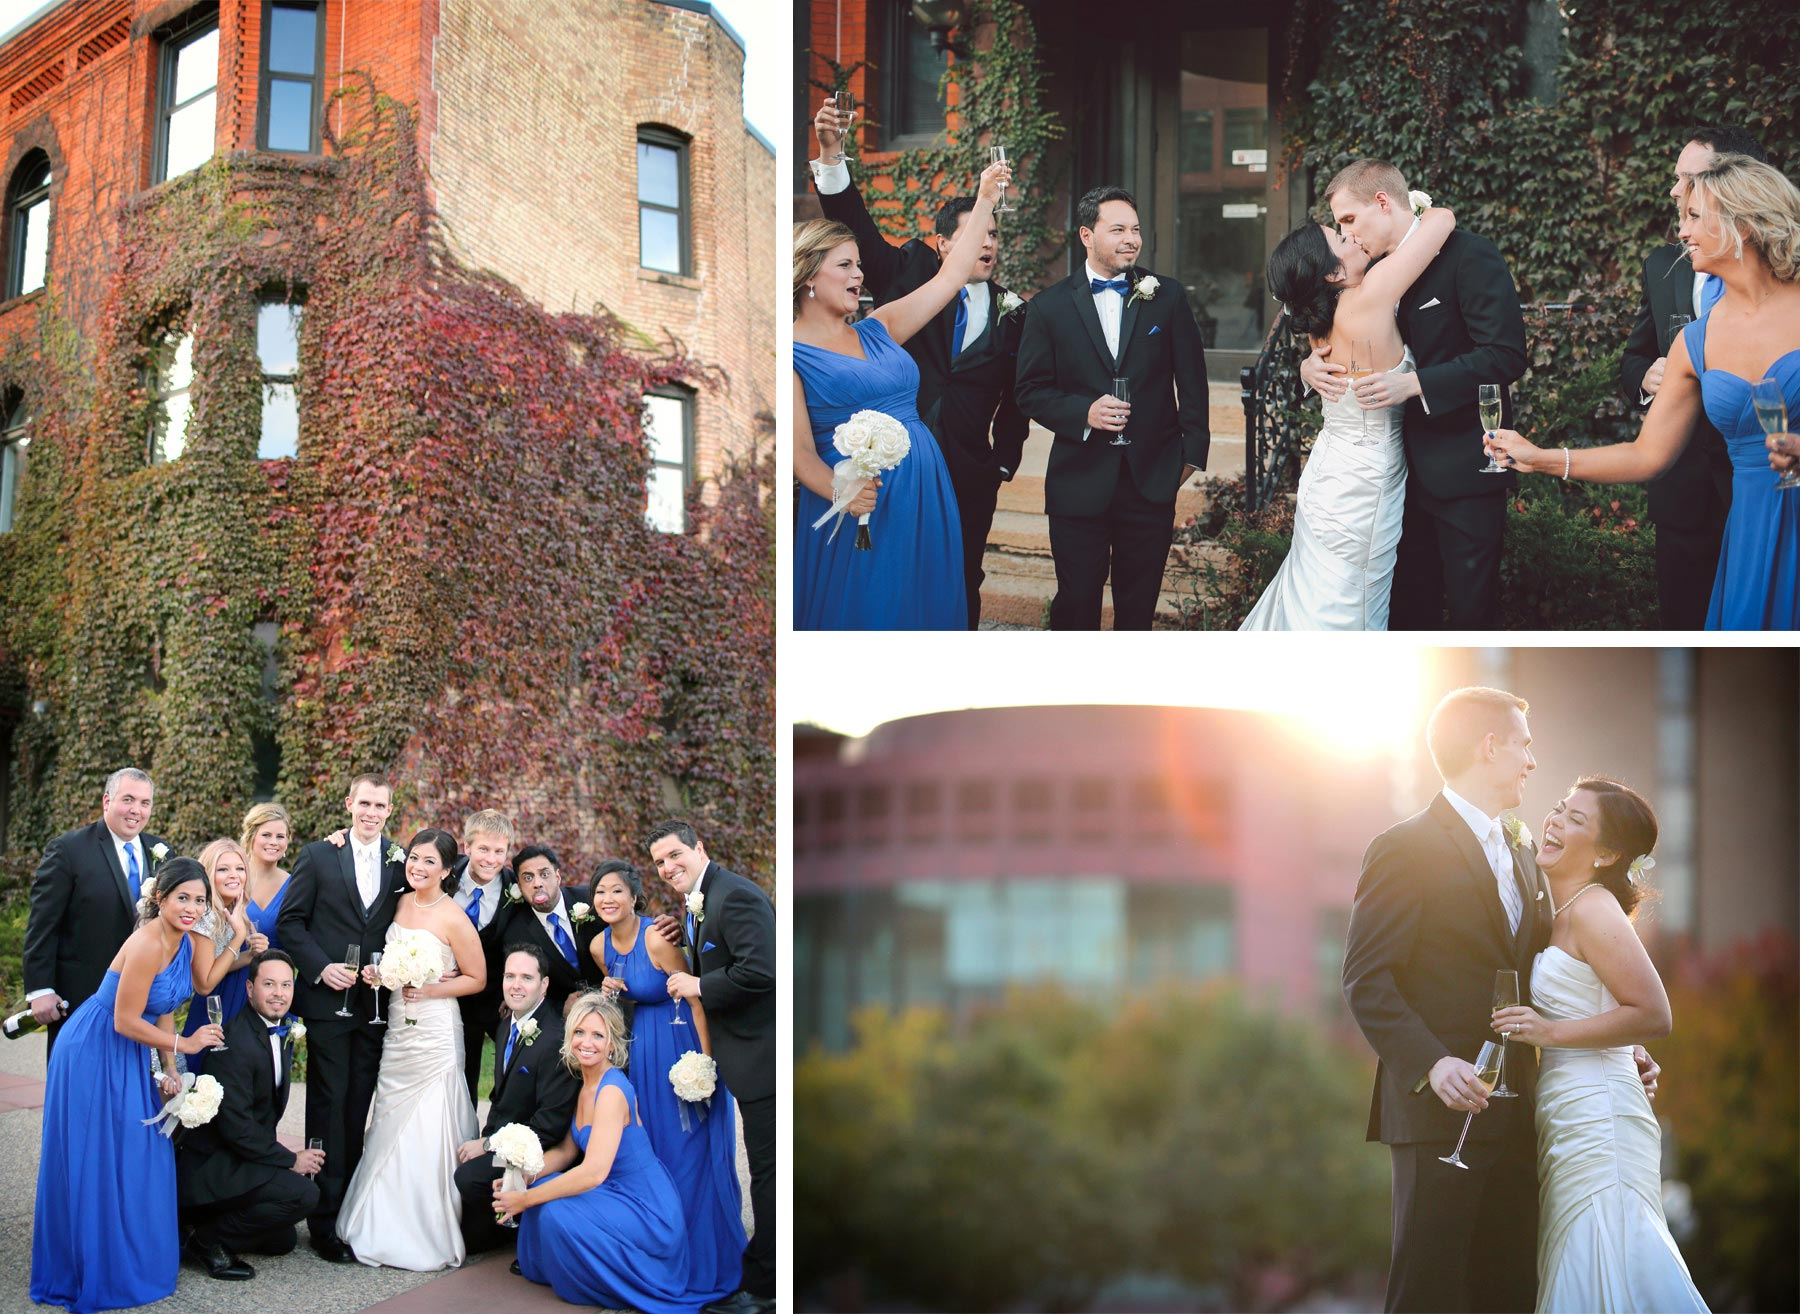 18-Minneapolis-Minnesota-Wedding-Photographer-by-Andrew-Vick-Photography-Fall-Autumn-Convention-Center-Bride-Groom-Bridal-Party-Bridesmaids-Groomsmen-Champagne-Kiss--Laughter-Vintage-Amanda-and-Cary.jpg